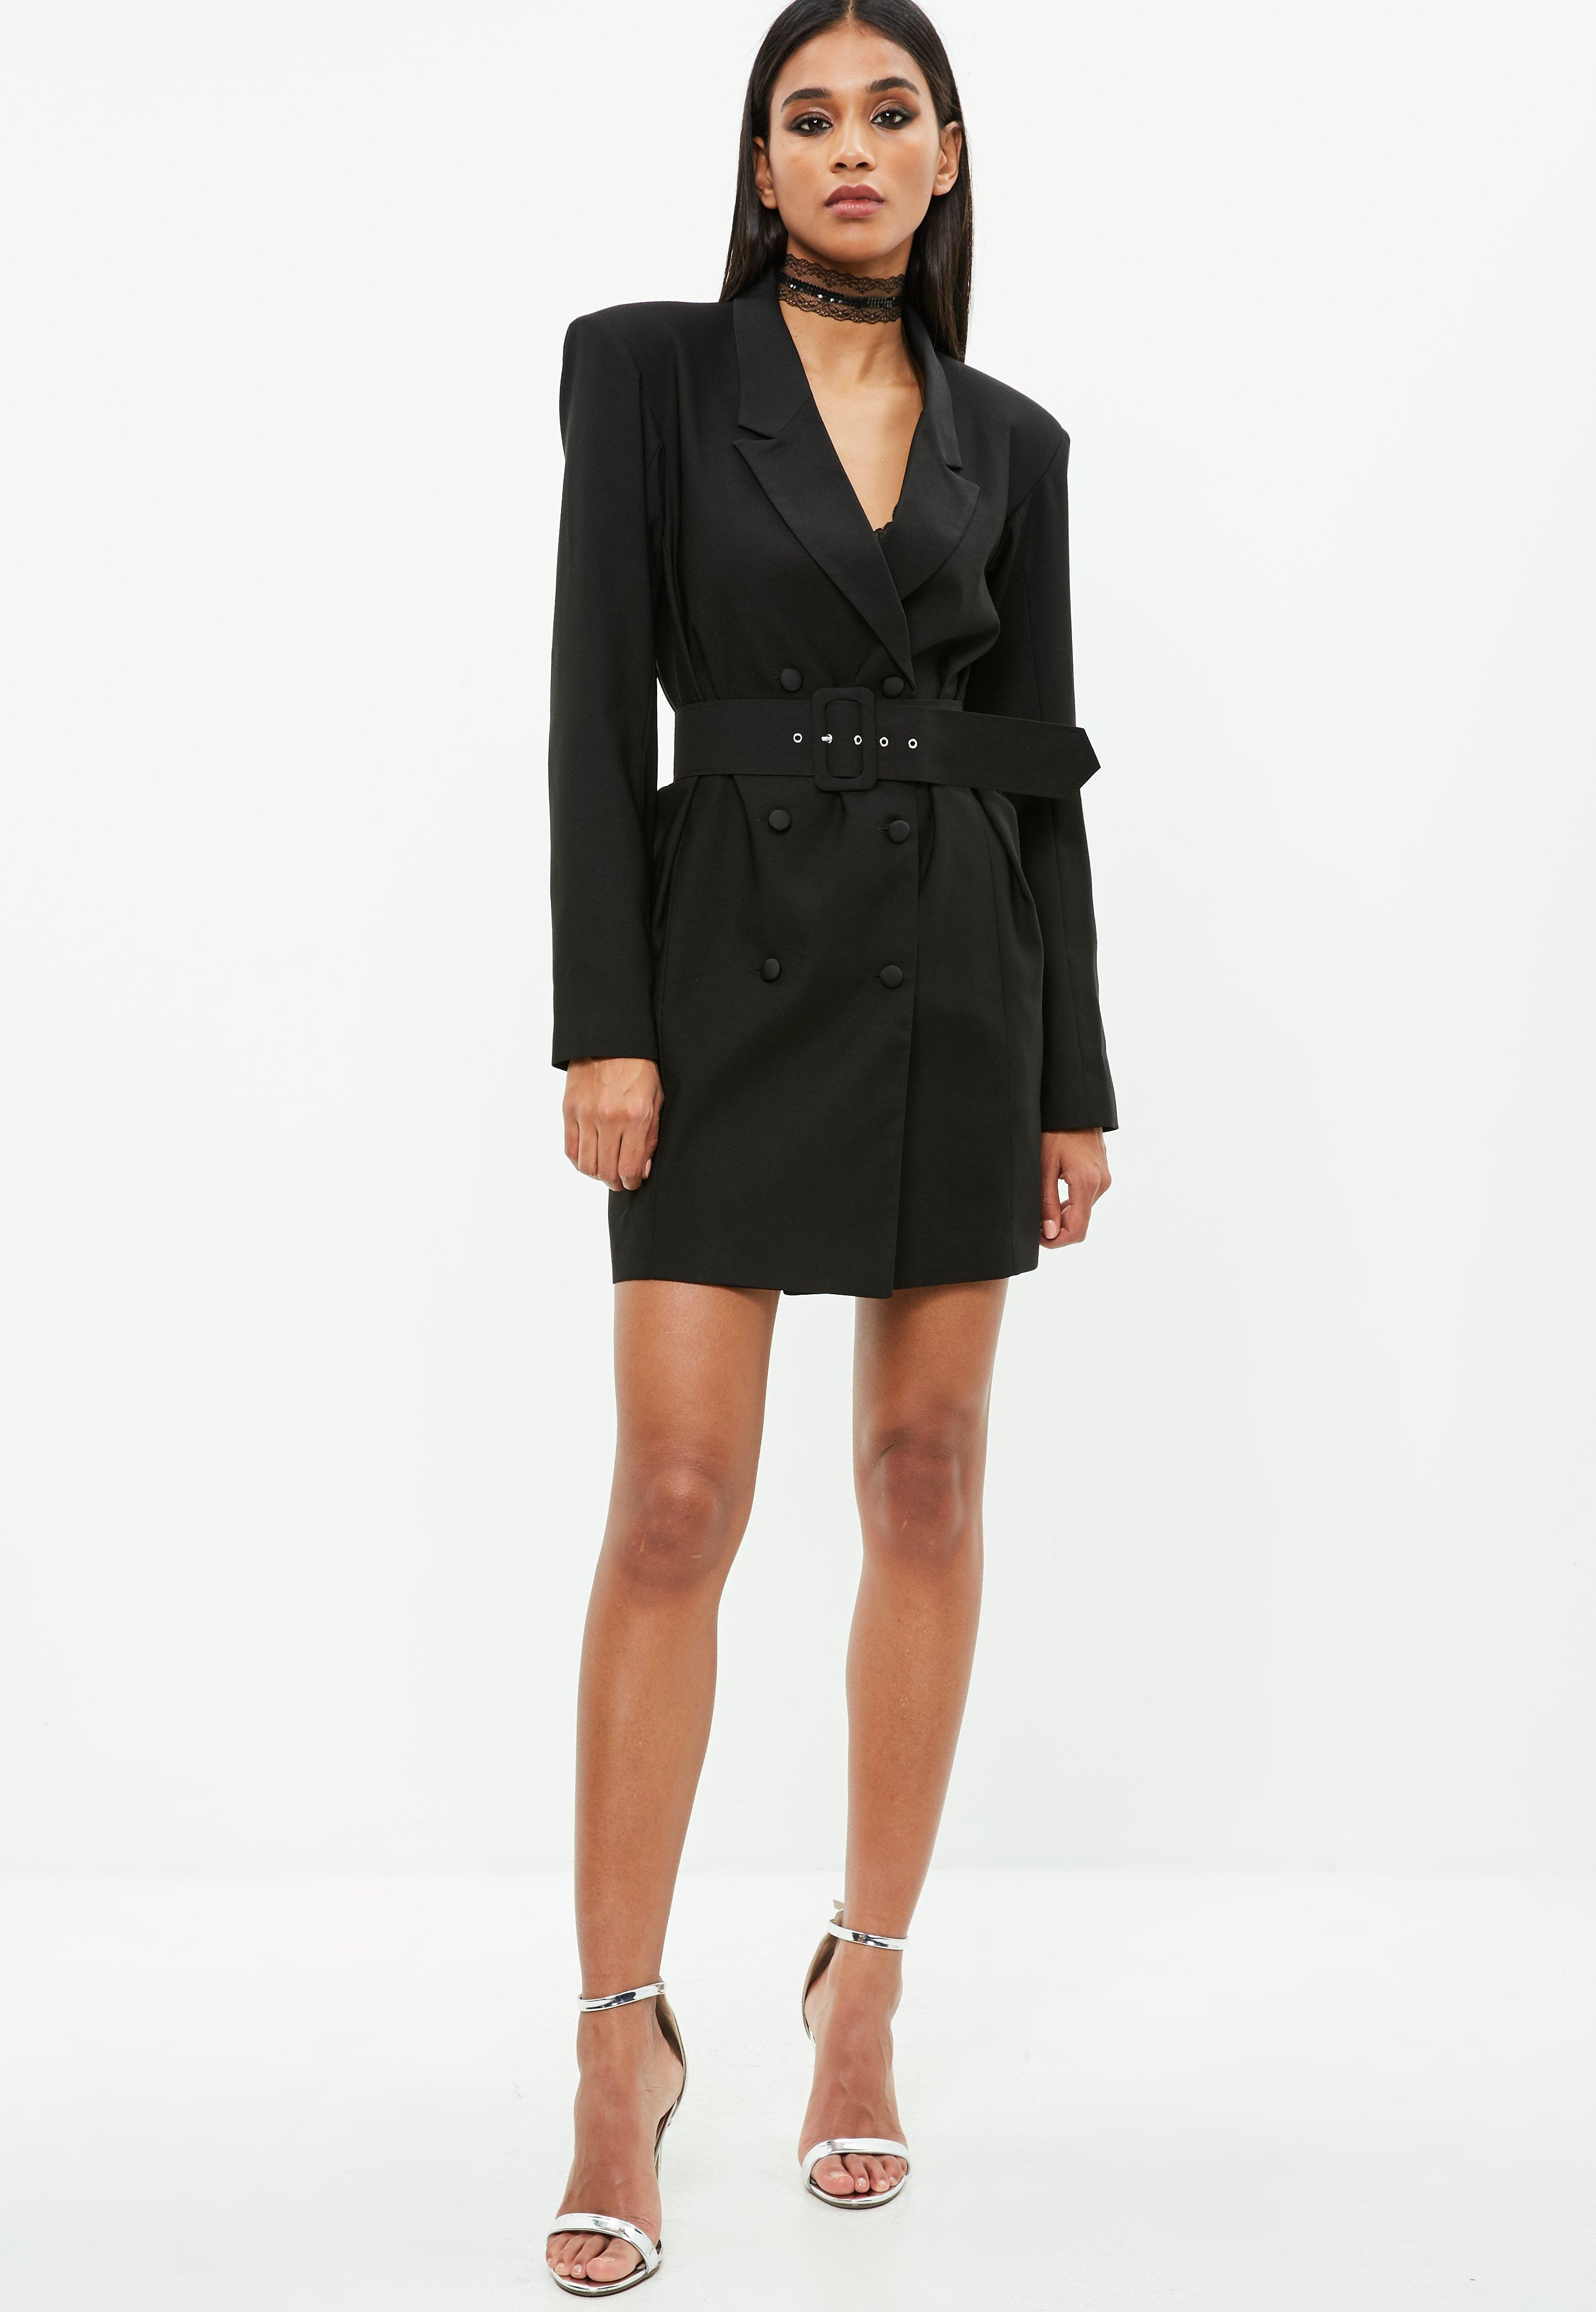 41a2733e937 Missguided Black Crepe Belted Button Blazer Dress in Black - Lyst